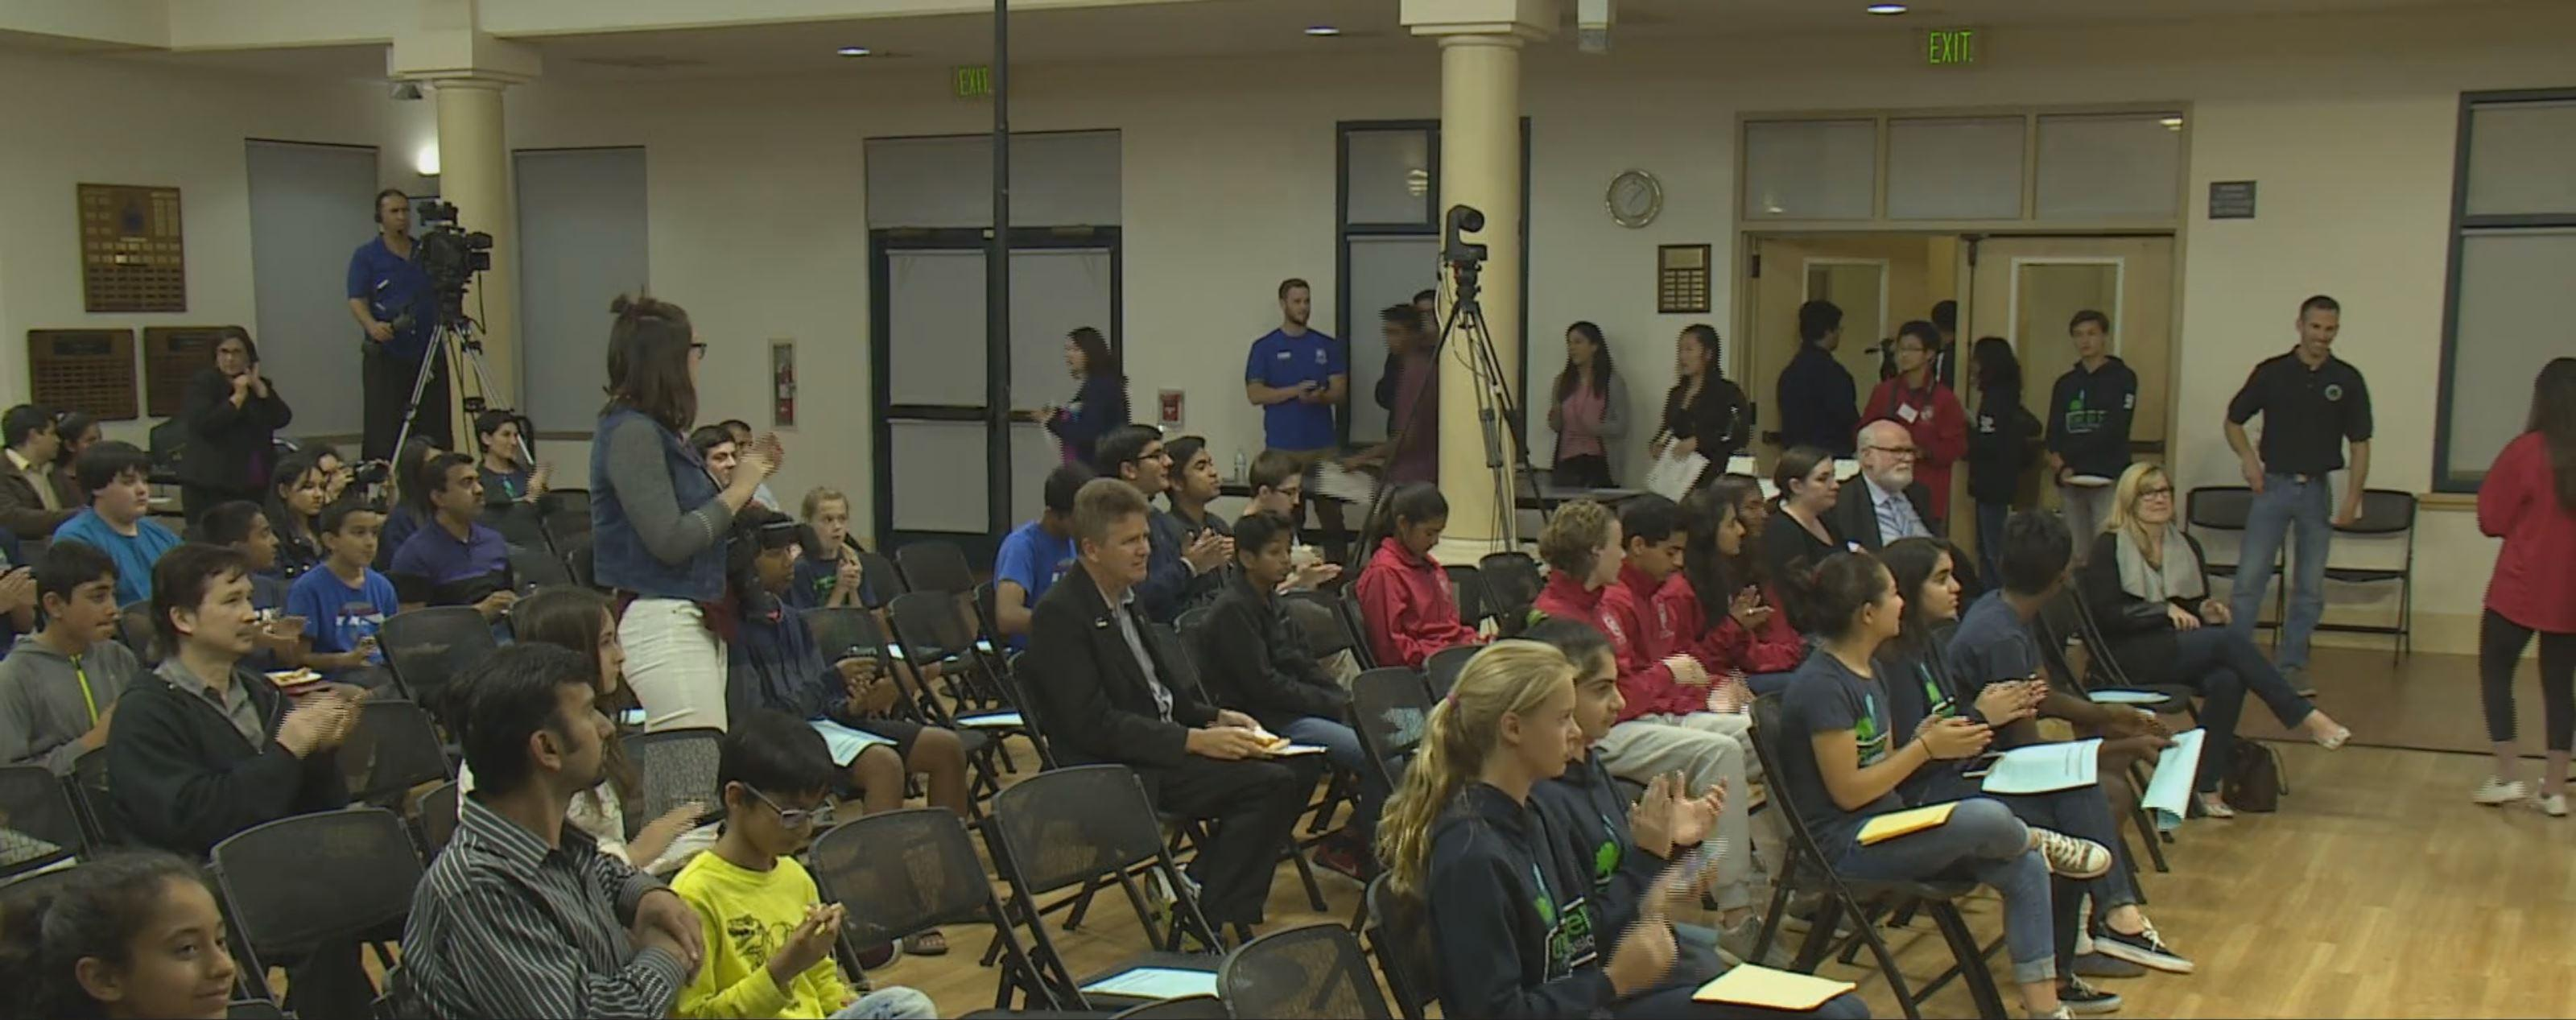 Pizza and Politics is hosted by the Cupertino Teen Commission every other year at the Quinlan Community Center. The event attempts to offer local high school students the chance to meet local politicians and ask them questions.